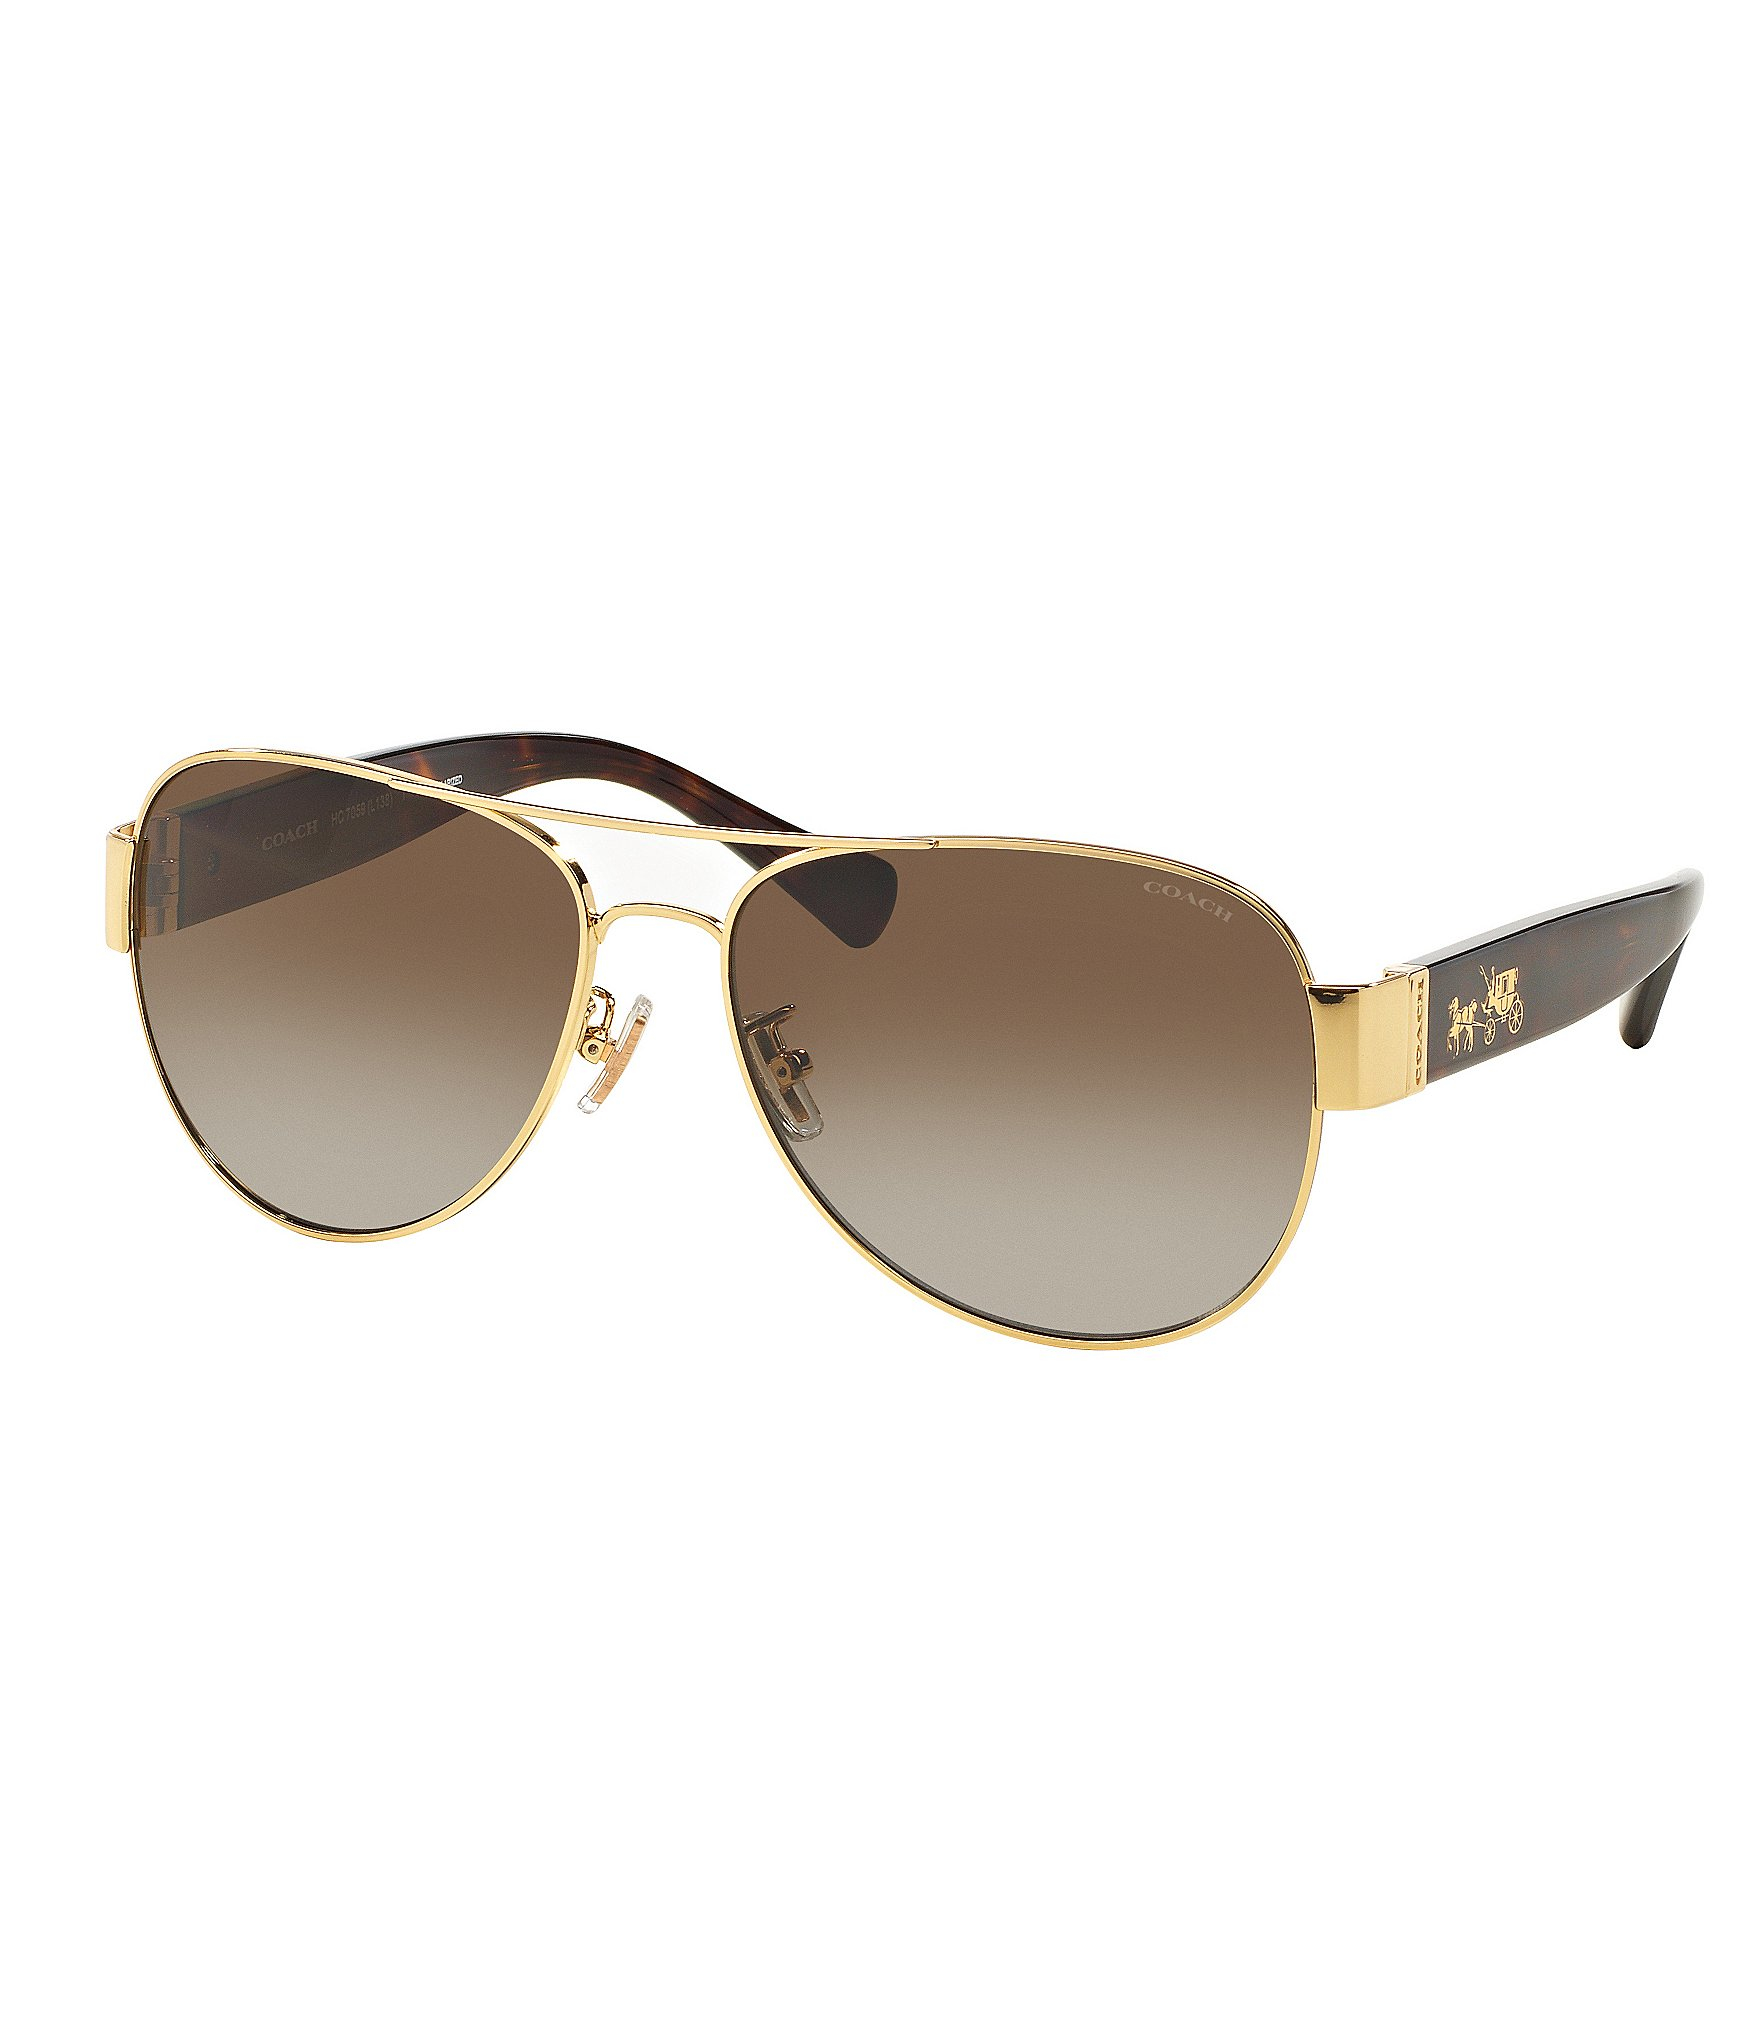 b7e32f0ccafb Coach Aviator Sunglasses S1021